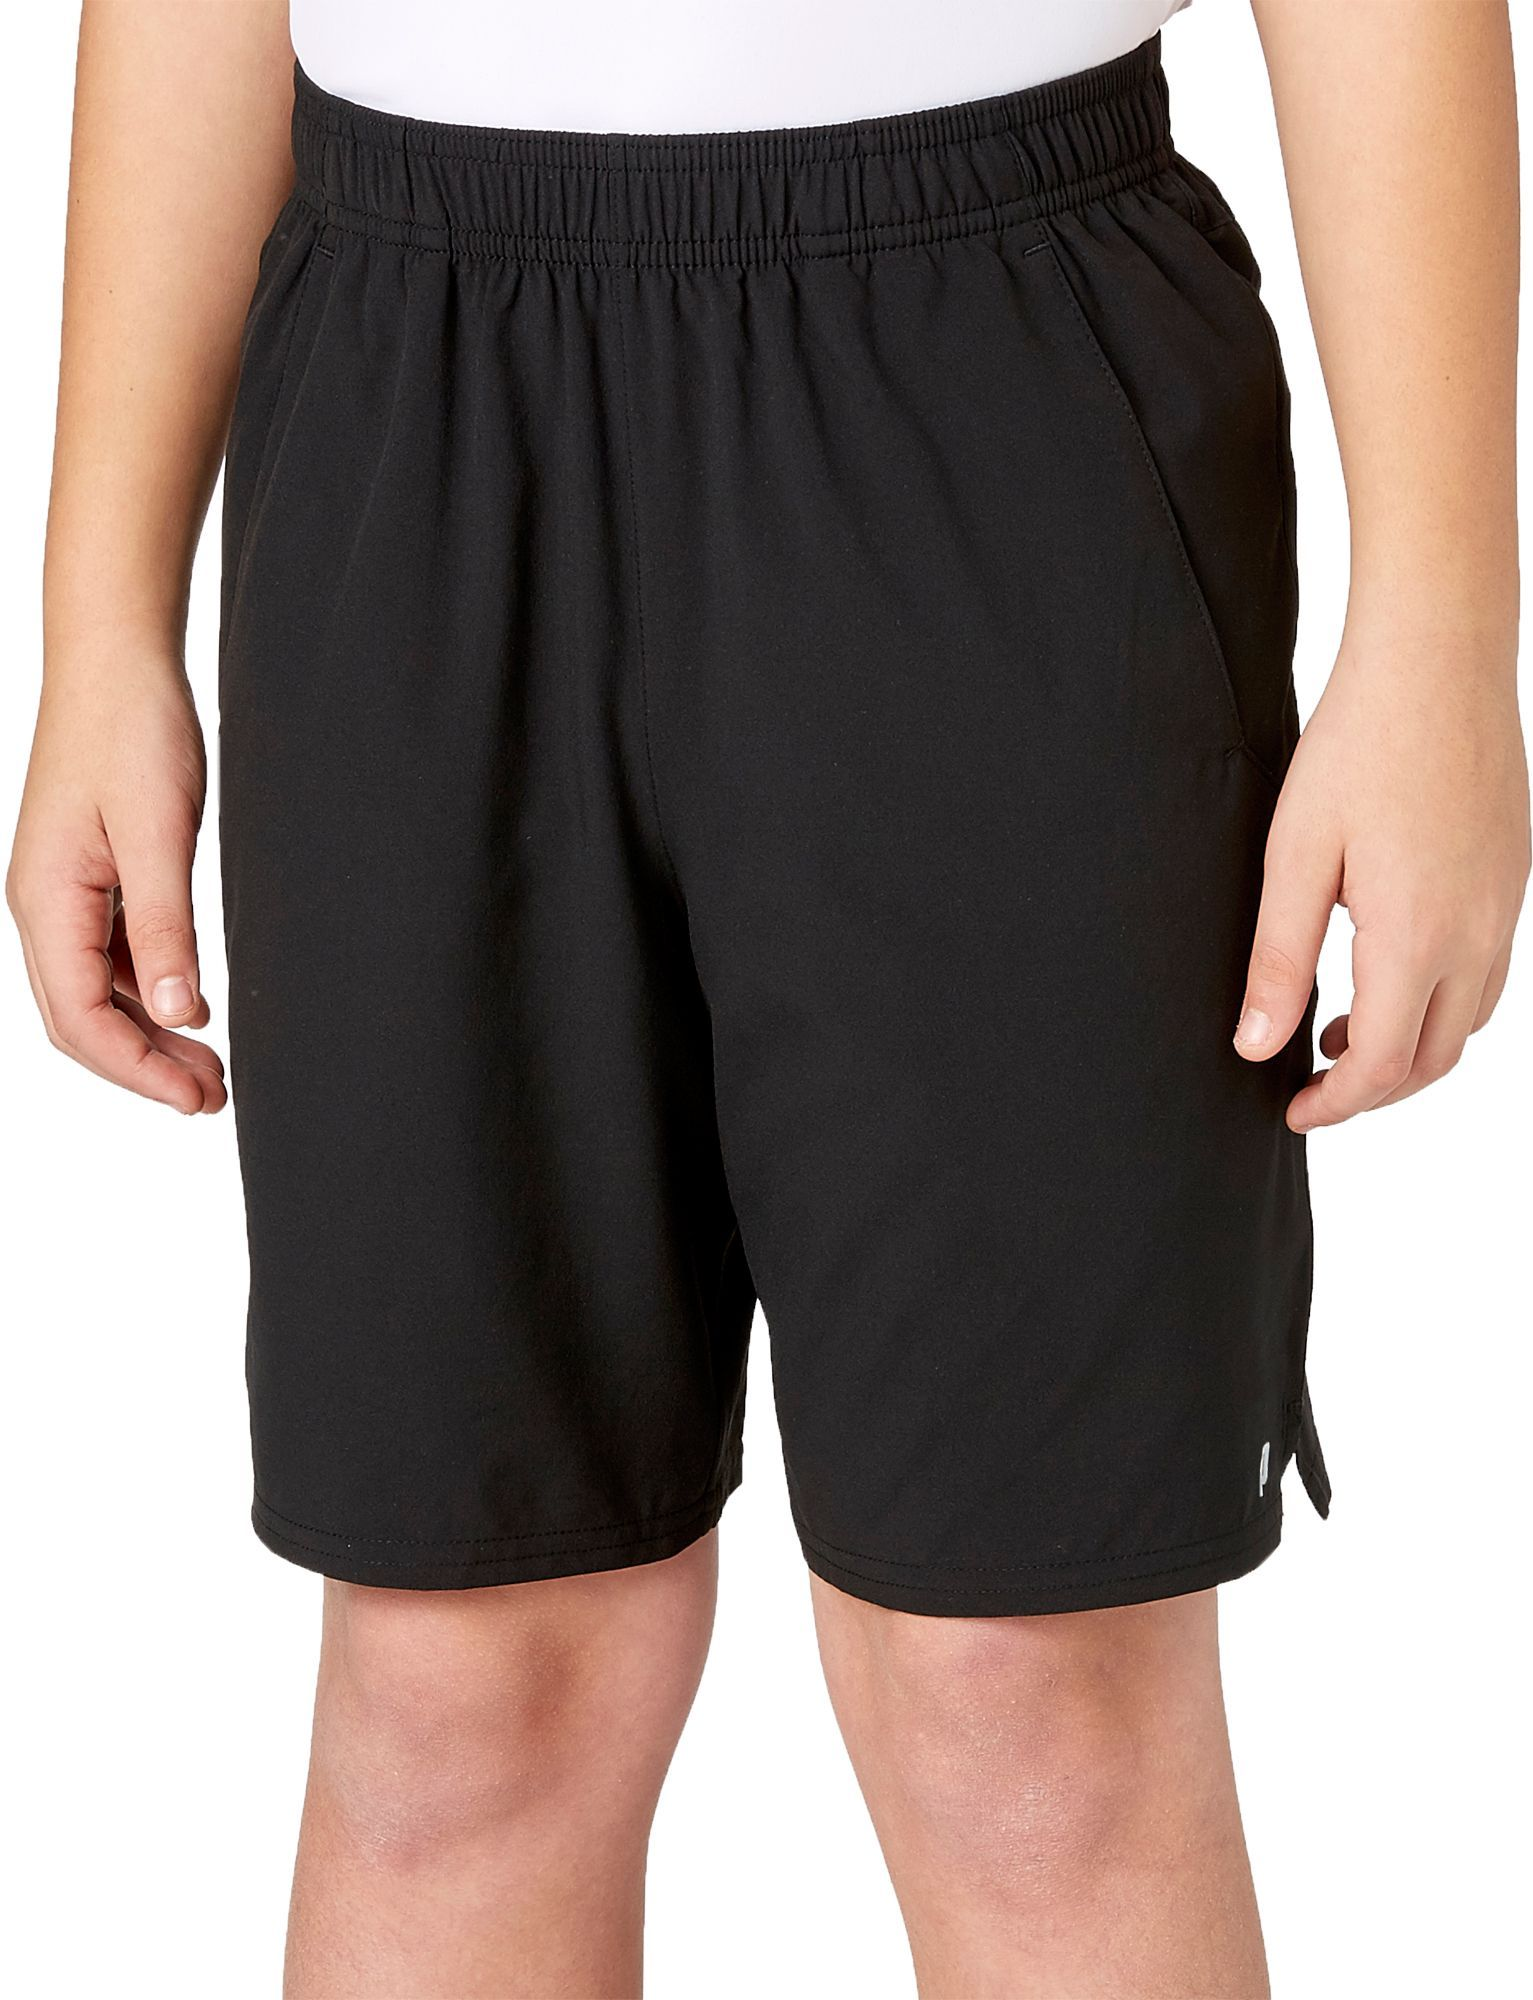 Prince Boys Match Woven Shorts Size Small Black